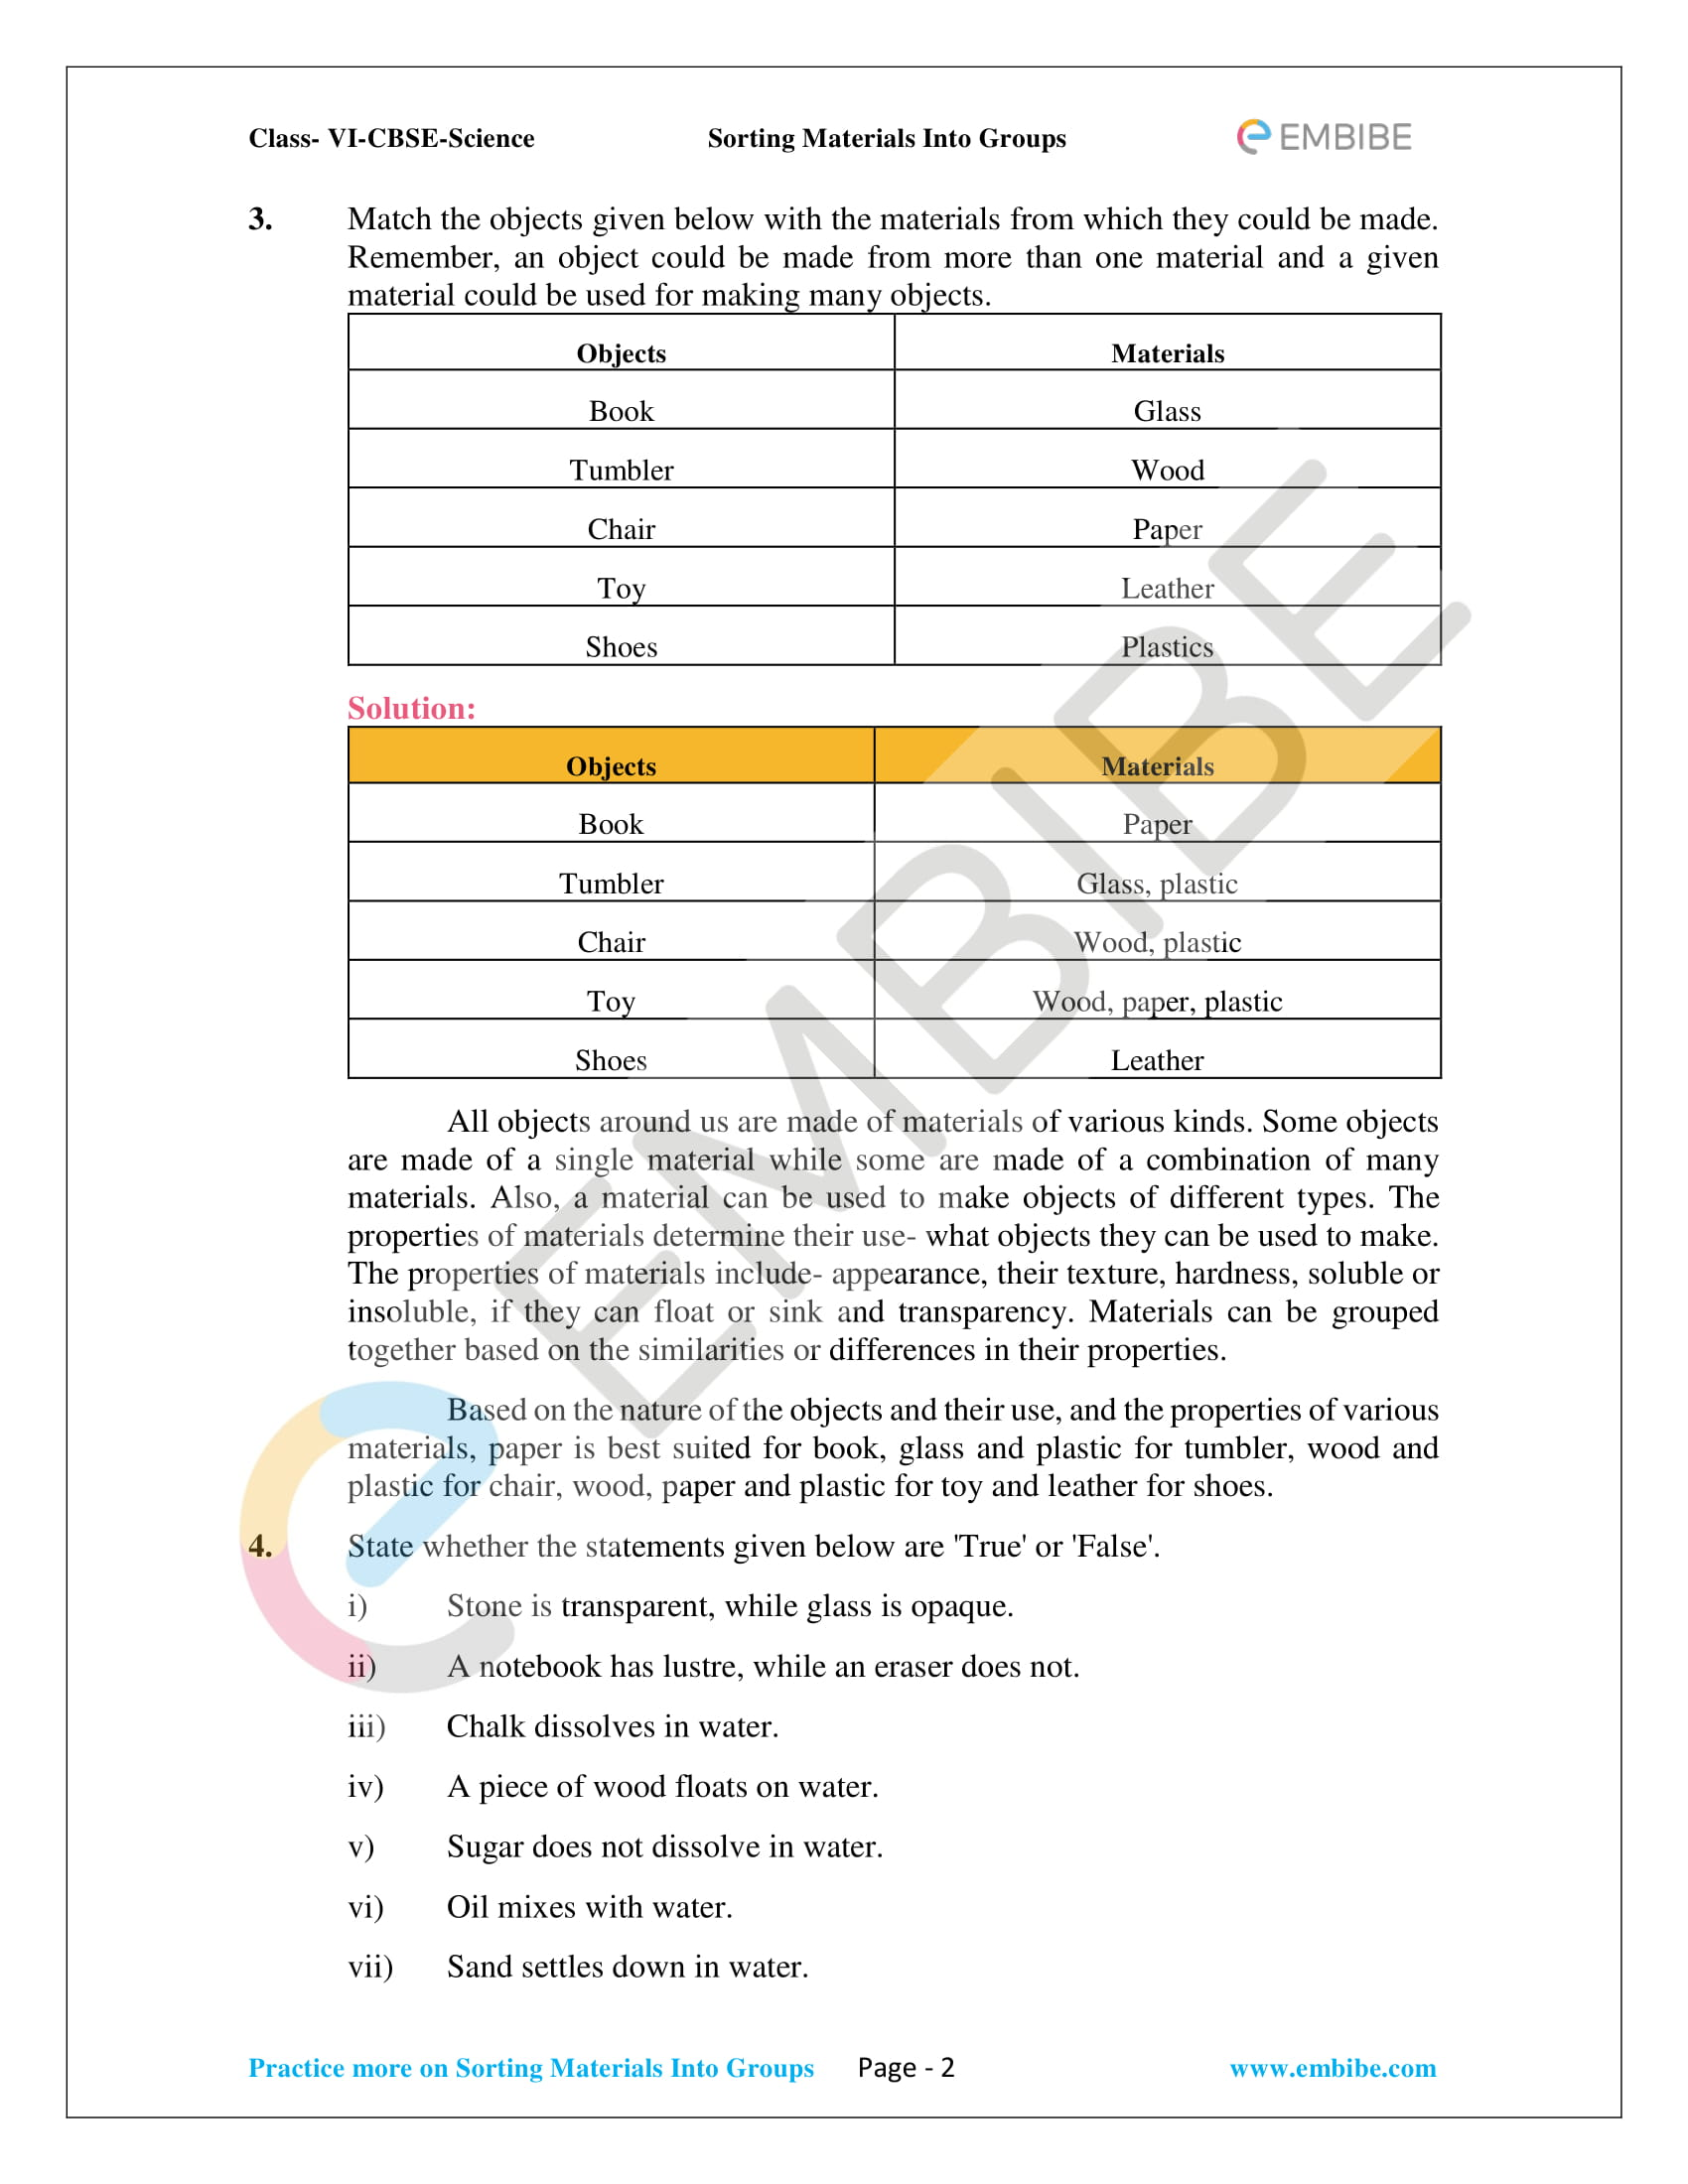 NCERT Solutions For Class 6 Science Chapter 4 - Sorting Materials Into Groups PDF - 2